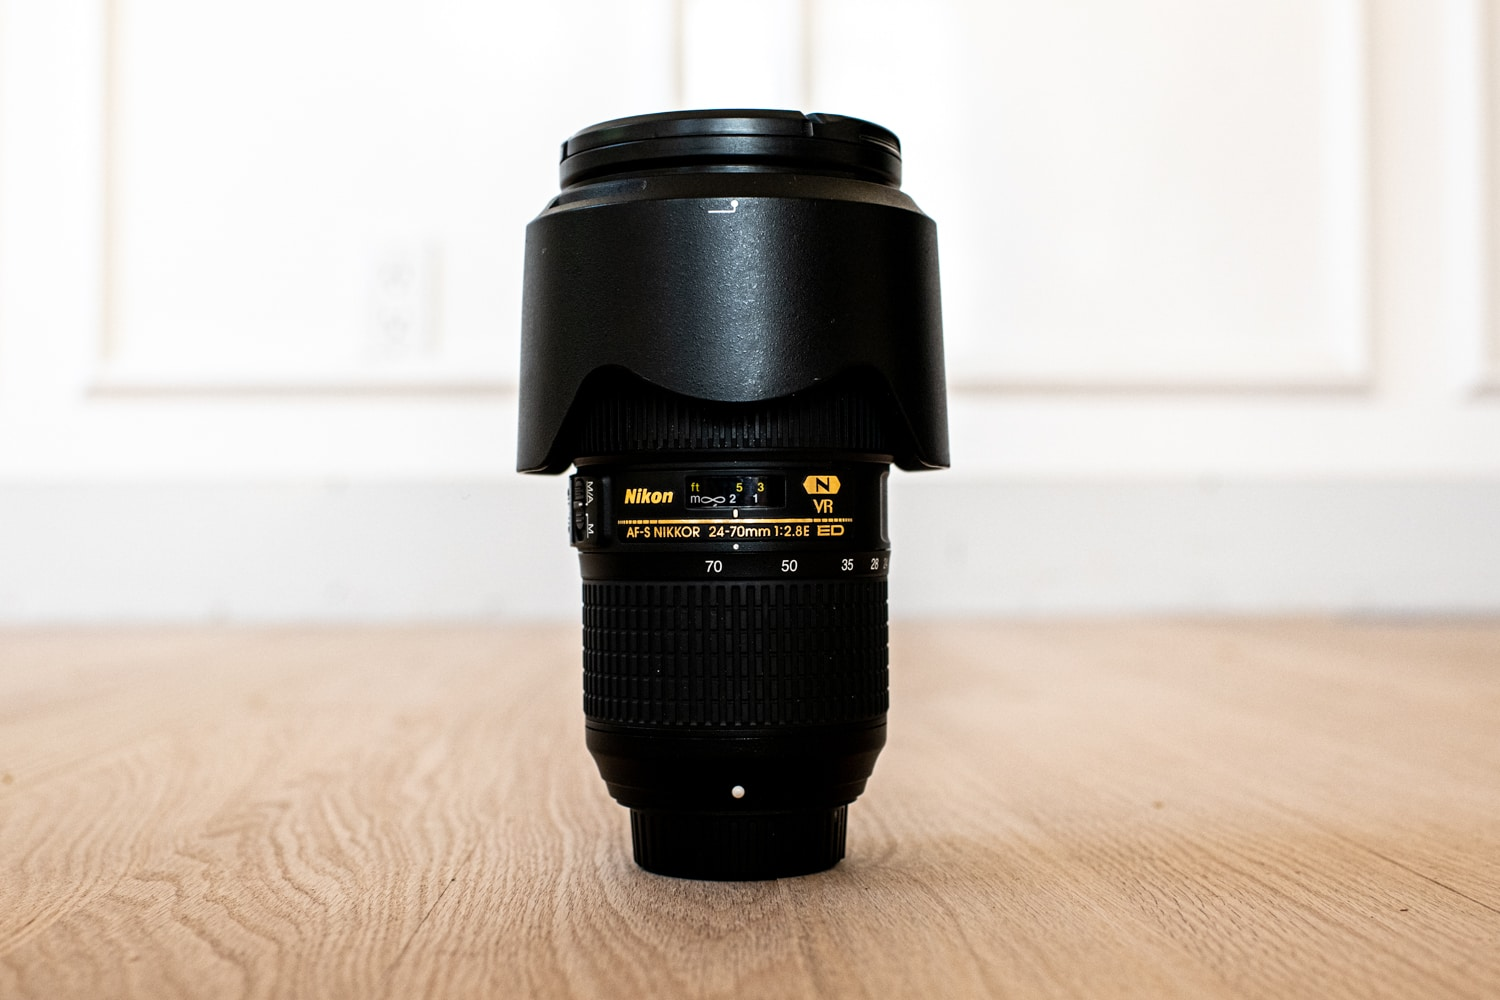 Nikkor 24-70mm lens for weddings.